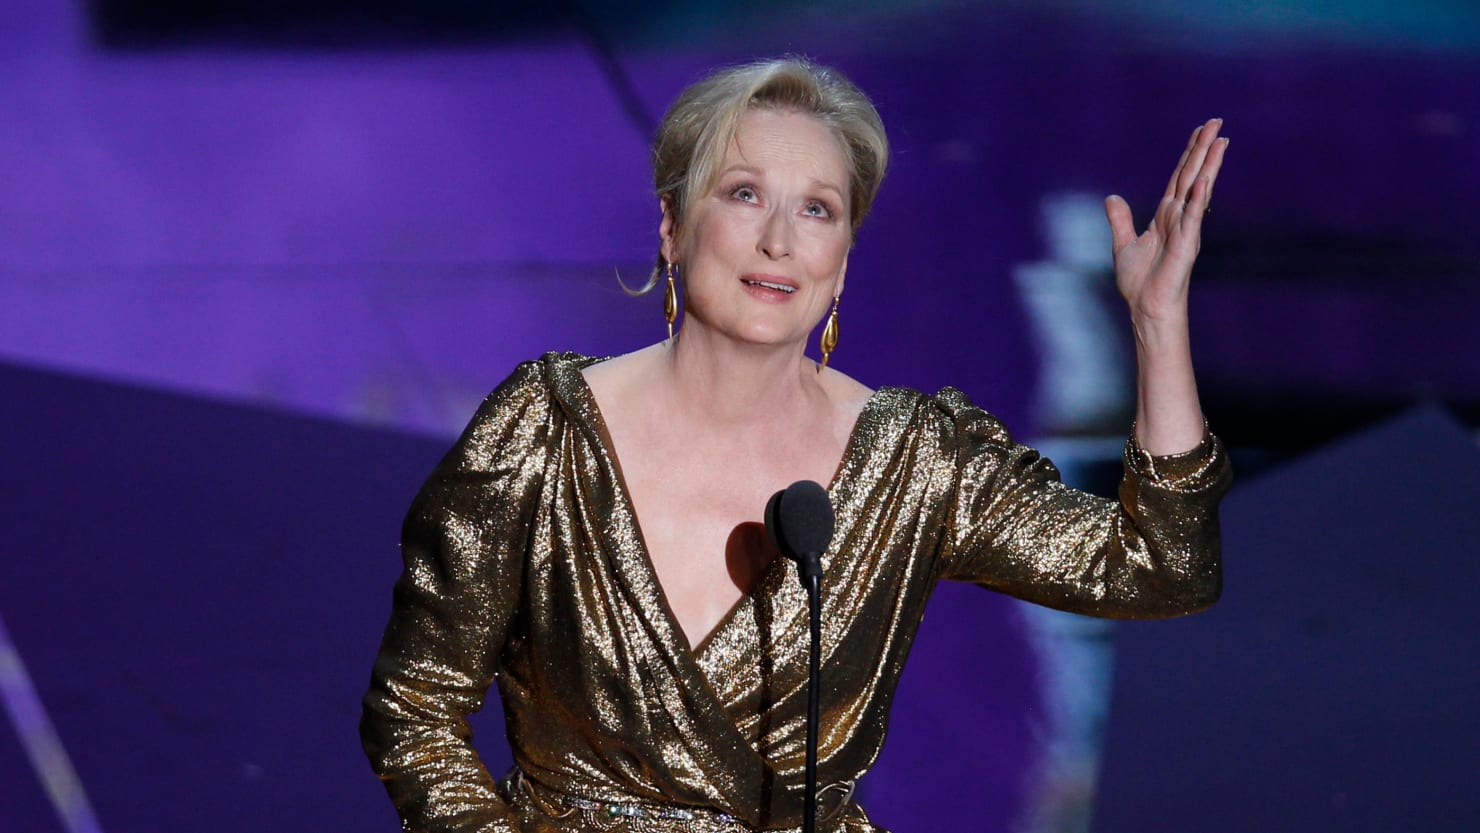 The Best Oscar Speeches Ever (That Always Make Me Cry)